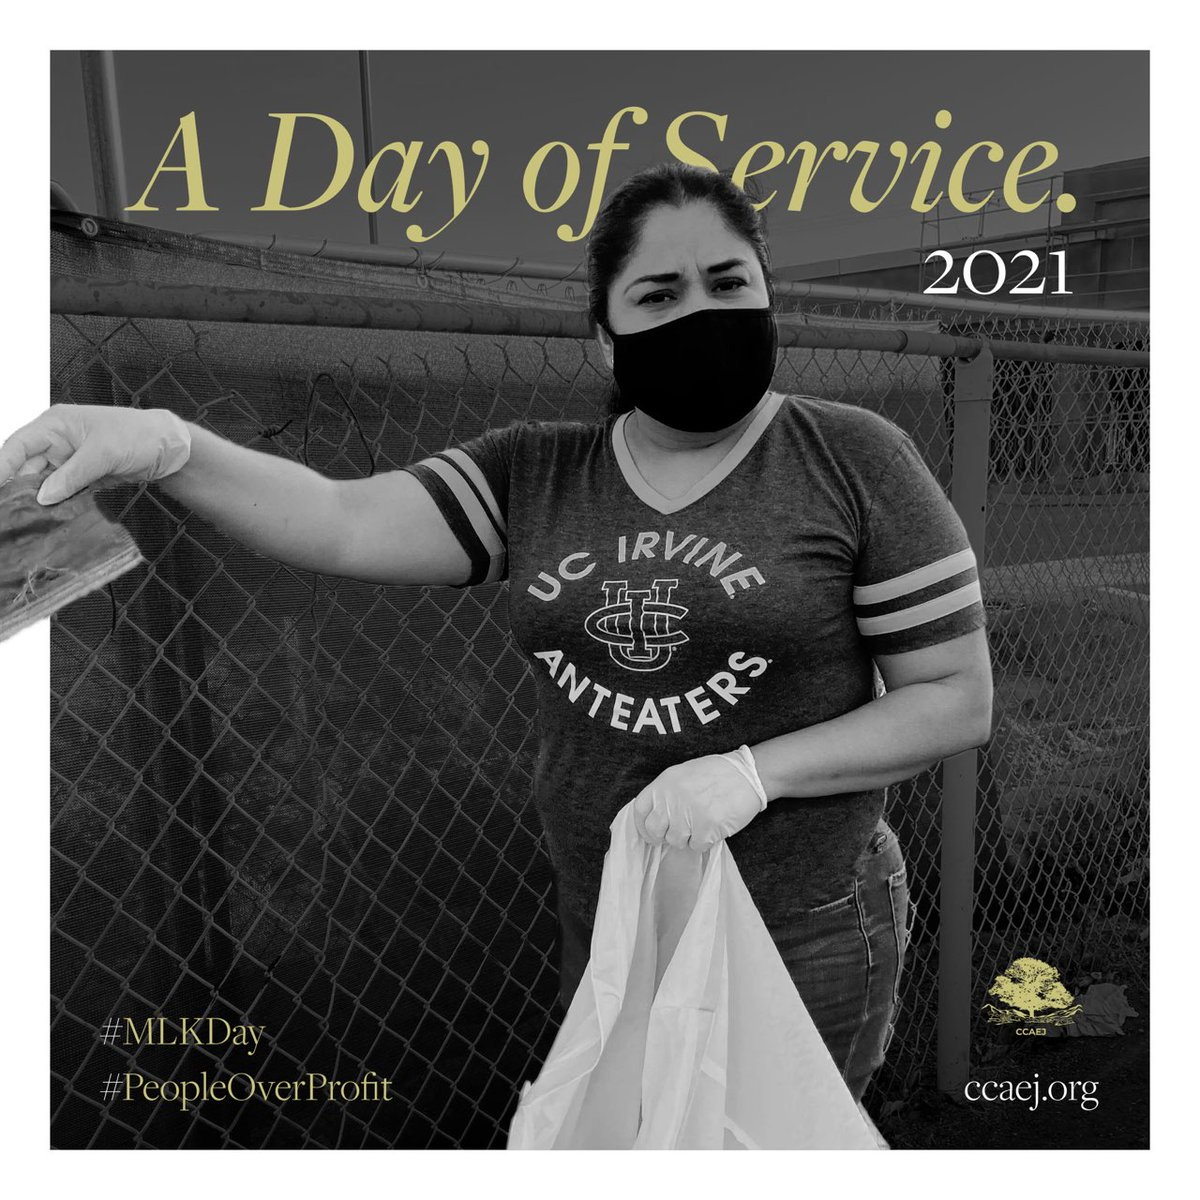 Day of Service - In honor of Rev. Dr. Martin Luther King, members of our staff participated in yesterday's Day of Service. A nationally recognized day that encourages all Americans to volunteer to improve their communities.💛 - #MLKday #PeopleOverProfit #ccaej  #volunteer